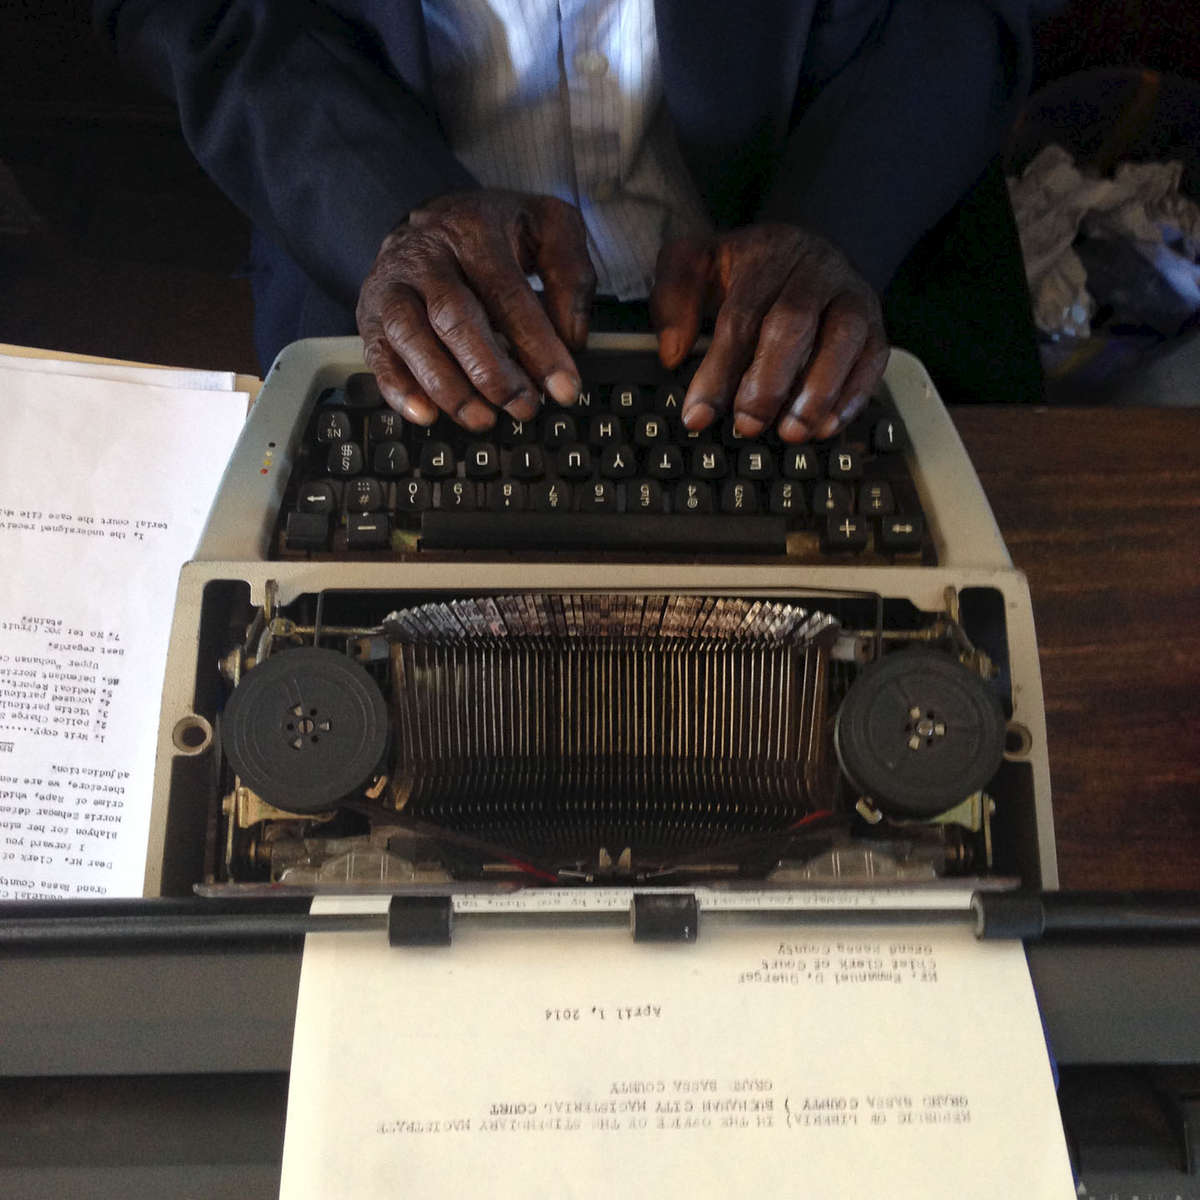 A court typewriter. Buchanan, Liberia. April 2014.